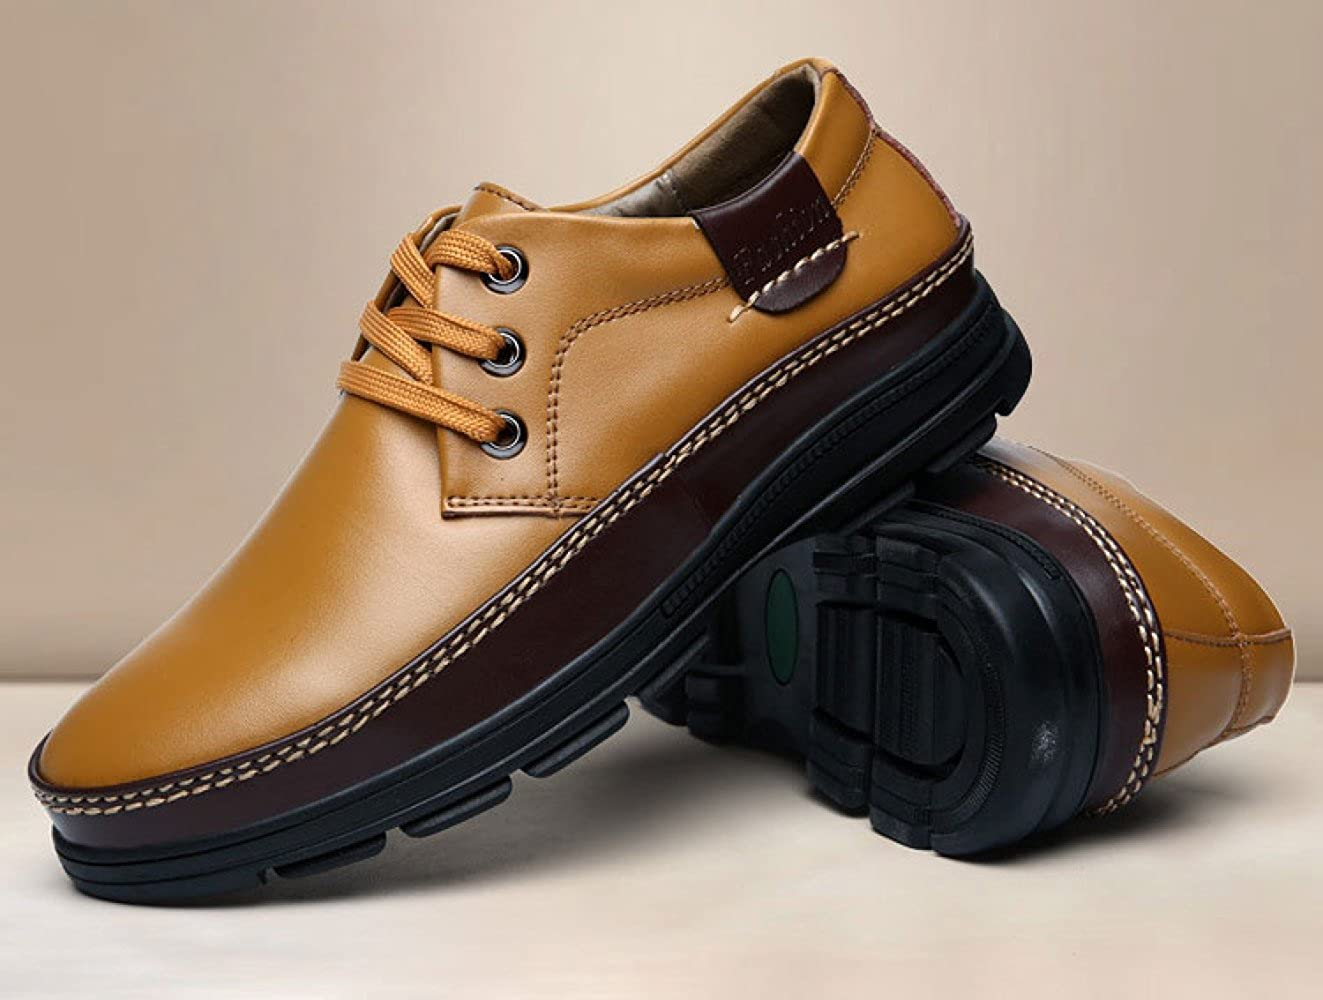 Casual Herrenschuhe Lace-up-Mode Schuhe Lederschuhe Bequeme Breathable Niedrig Schuhe Lace-up-Mode Yellow c79d48